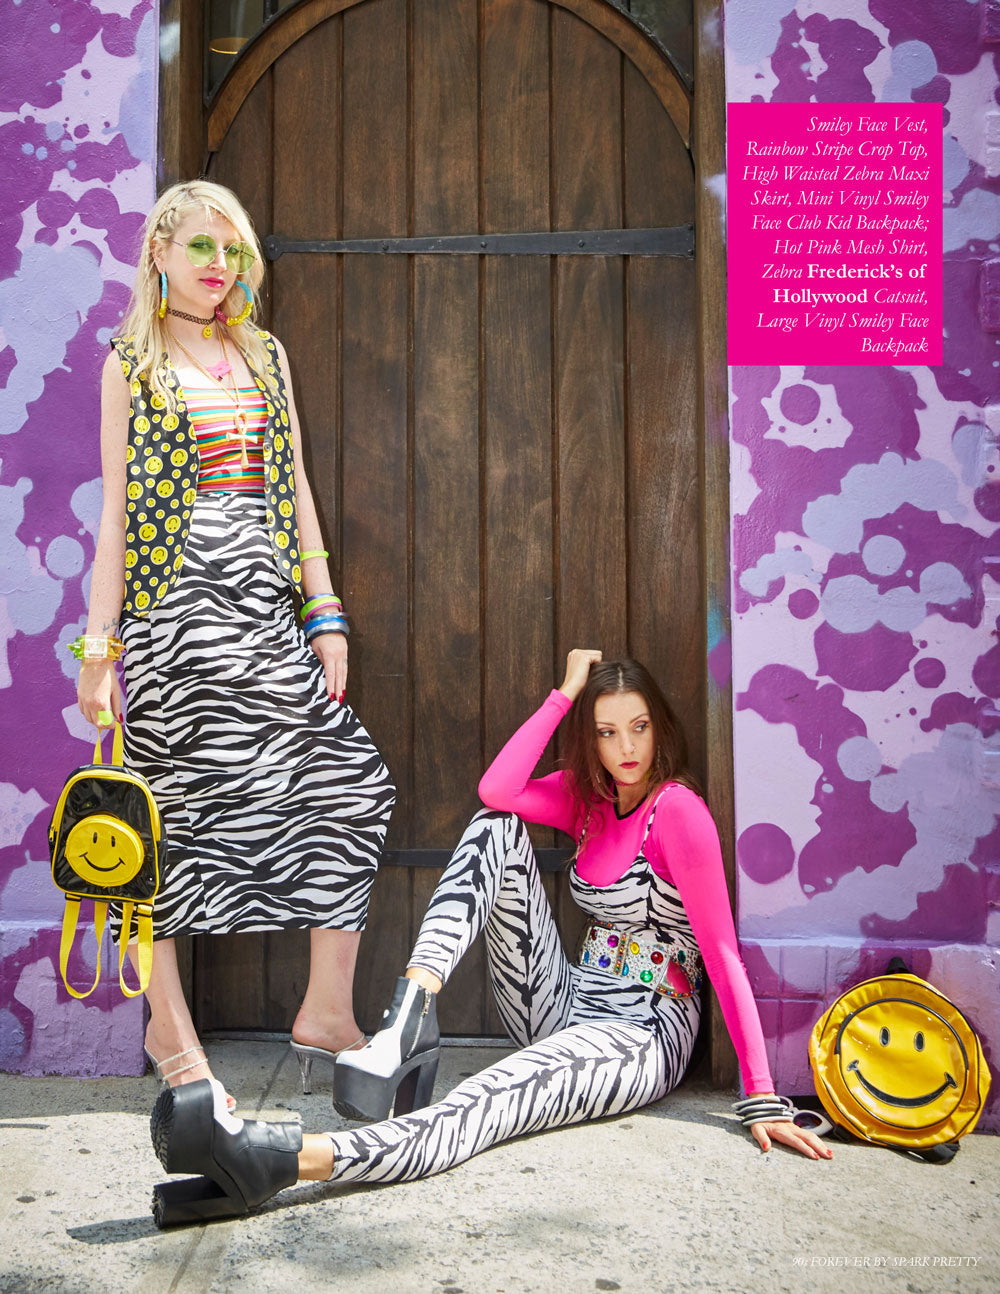 90s Forever Retro Vintage Fashion Apparel Lookbook - Smiley Face Vest, Rainbow Stripe Crop Top, High Waisted Zebra Maxi Skirt, Mini Vinyl Smiley Face Club Kid Backpack; Hot Pink Mesh Shirt, Zebra Frederick's of Hollywood Catsuit, Large Vinyl Smiley Face Backpack